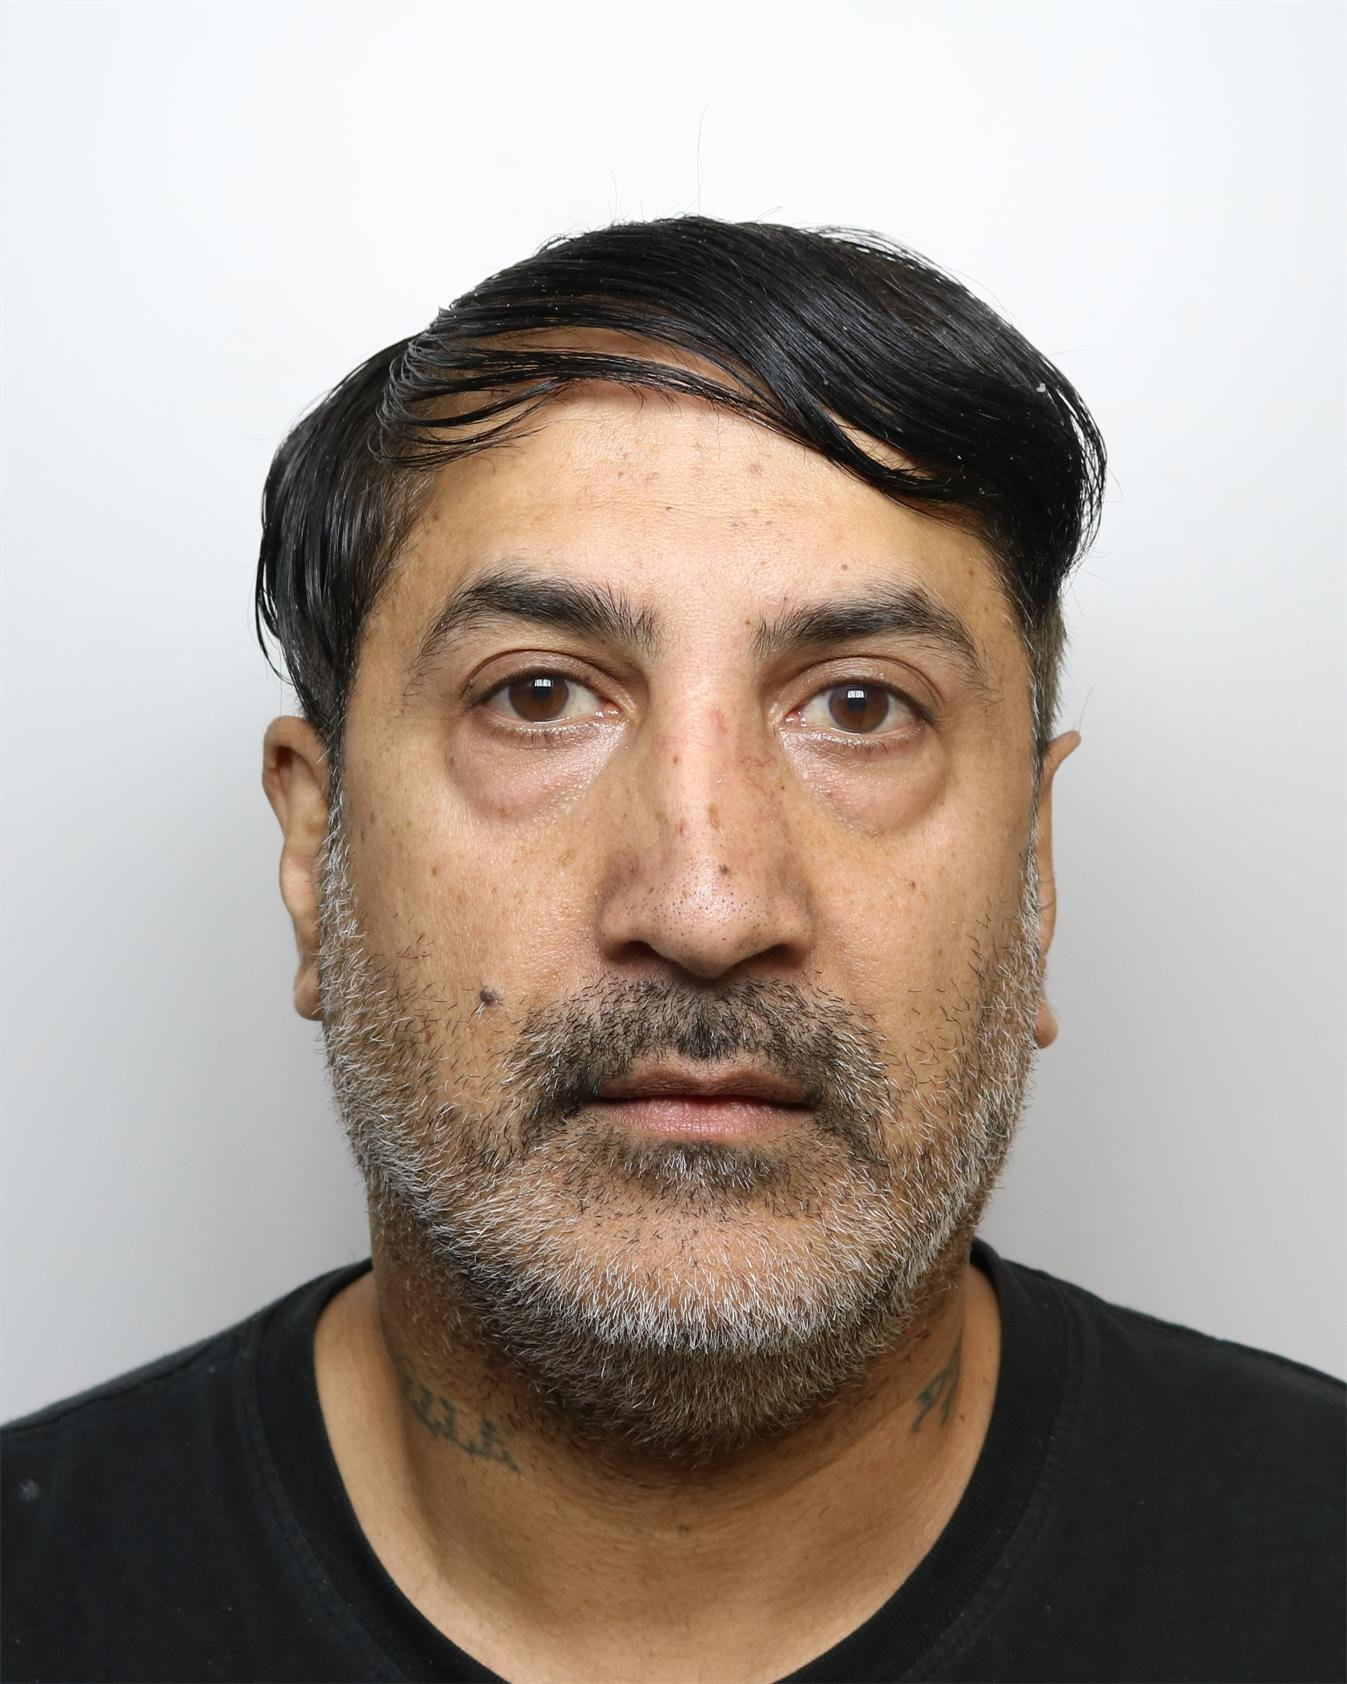 "Niaz Ahmed is shown in a police mugshot, in connection with a large scale rape and sexual abuse trial which sees 16 asian men from the Kirklees area jailed for a total of 221 years, at Leeds Crown Court, West Yorks., October 19 2018. See SWNS story SWLEabuse: A 16-strong gang of Asian men have been jailed for 221 years for drugging and sexually abusing vulnerable girls as young as eleven years old. The perverted group of men sexually abused the young victims, including two who had learning difficulties, between 2004 and 2011. The ""cynical"" exploitation of the girls - between just 11 and 17 years old - included plying them with alcohol and drugging them before carrying out horrific sexual assaults."